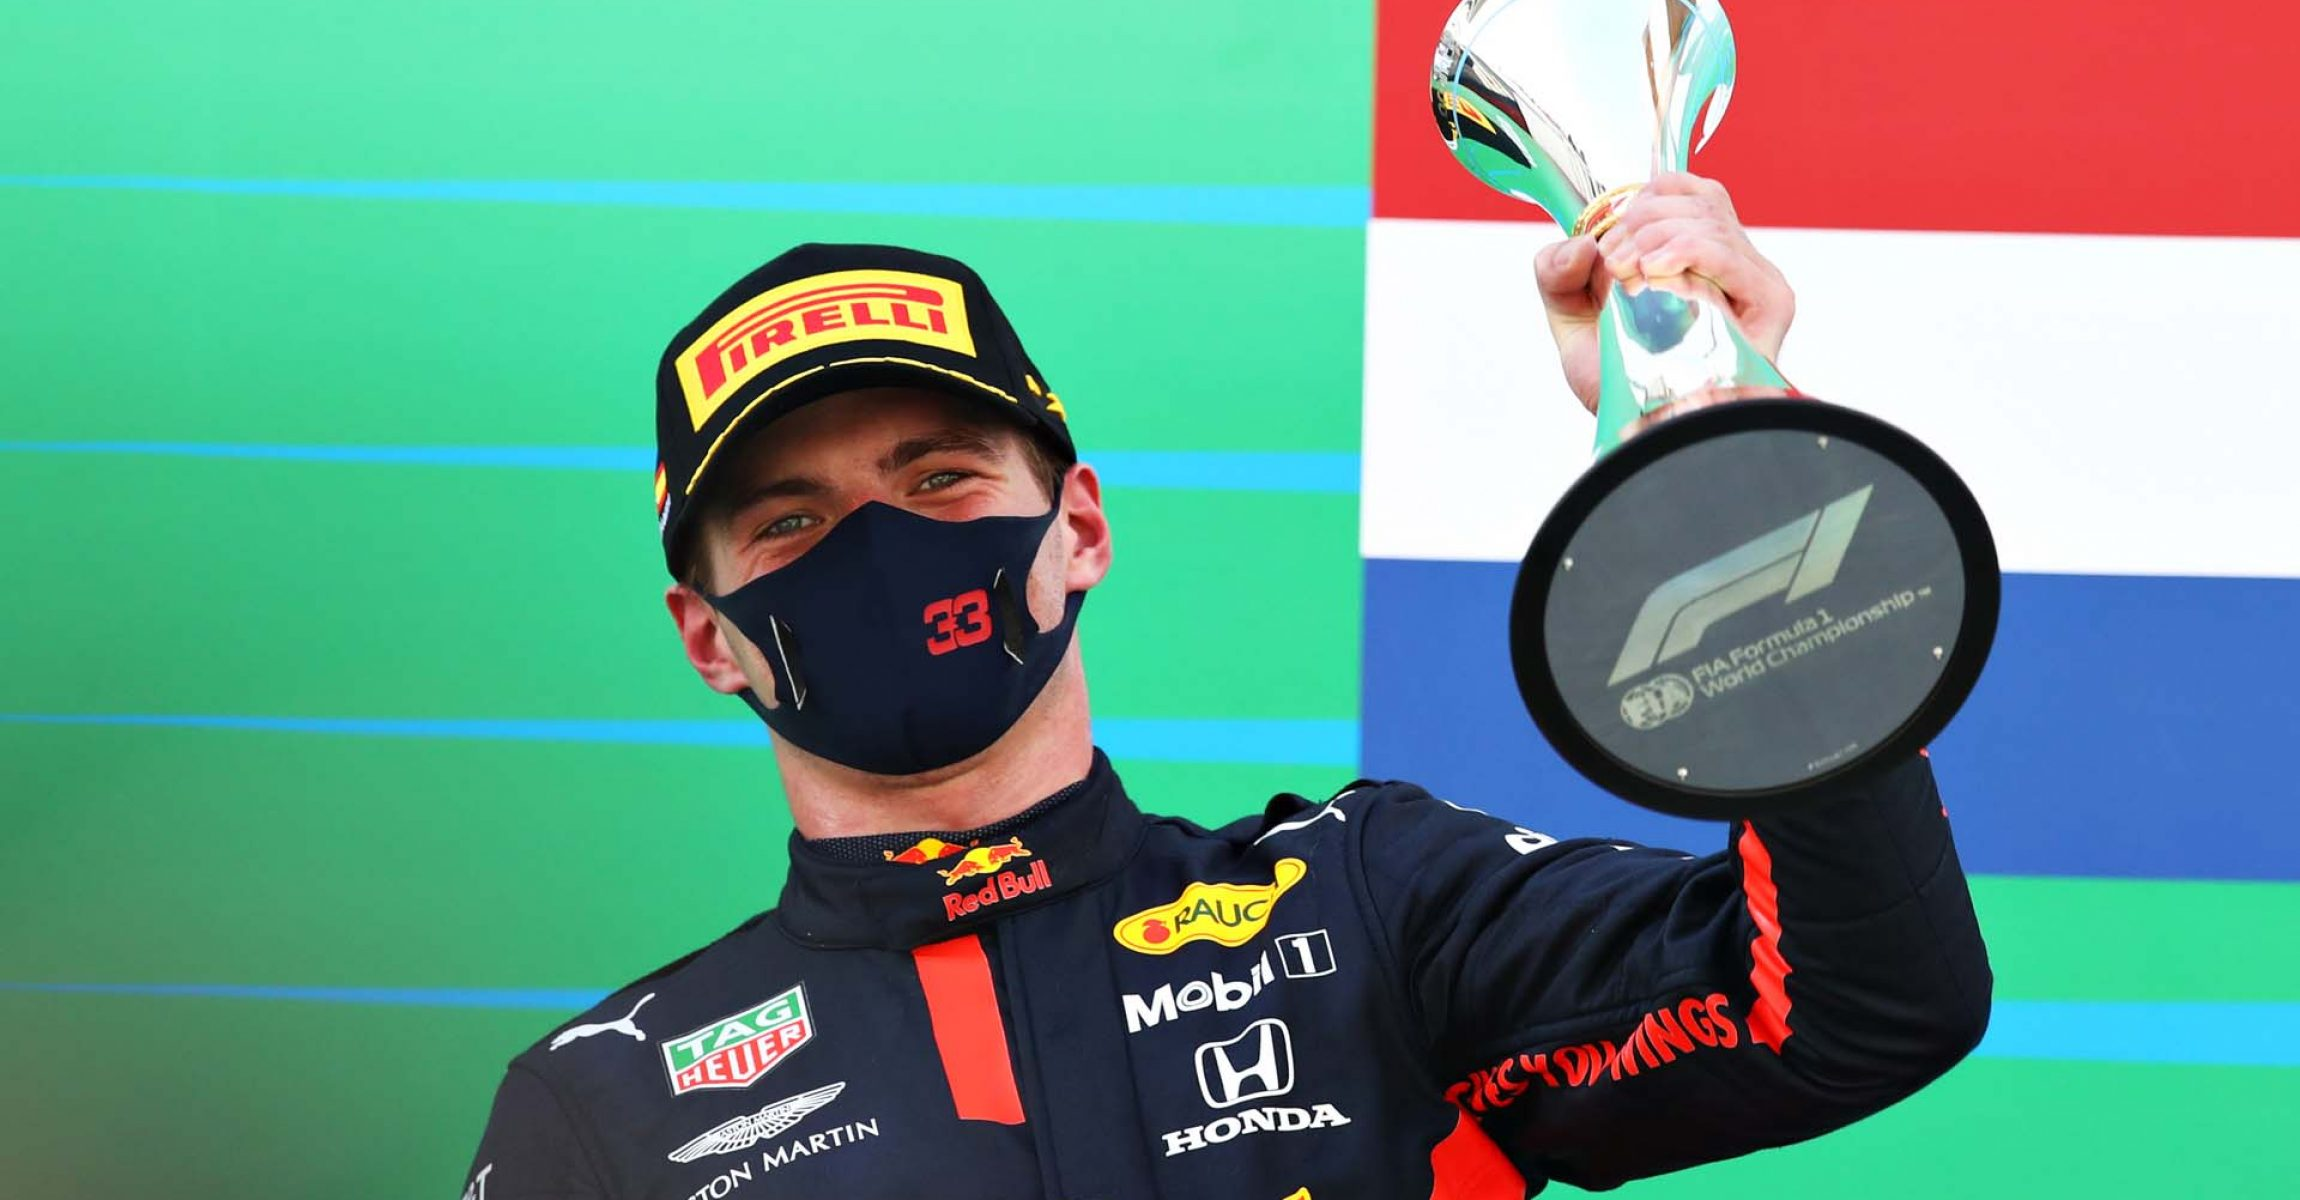 BARCELONA, SPAIN - AUGUST 16: Second placed Max Verstappen of Netherlands and Red Bull Racing celebrates on the podium during the F1 Grand Prix of Spain at Circuit de Barcelona-Catalunya on August 16, 2020 in Barcelona, Spain. (Photo by Mark Thompson/Getty Images)